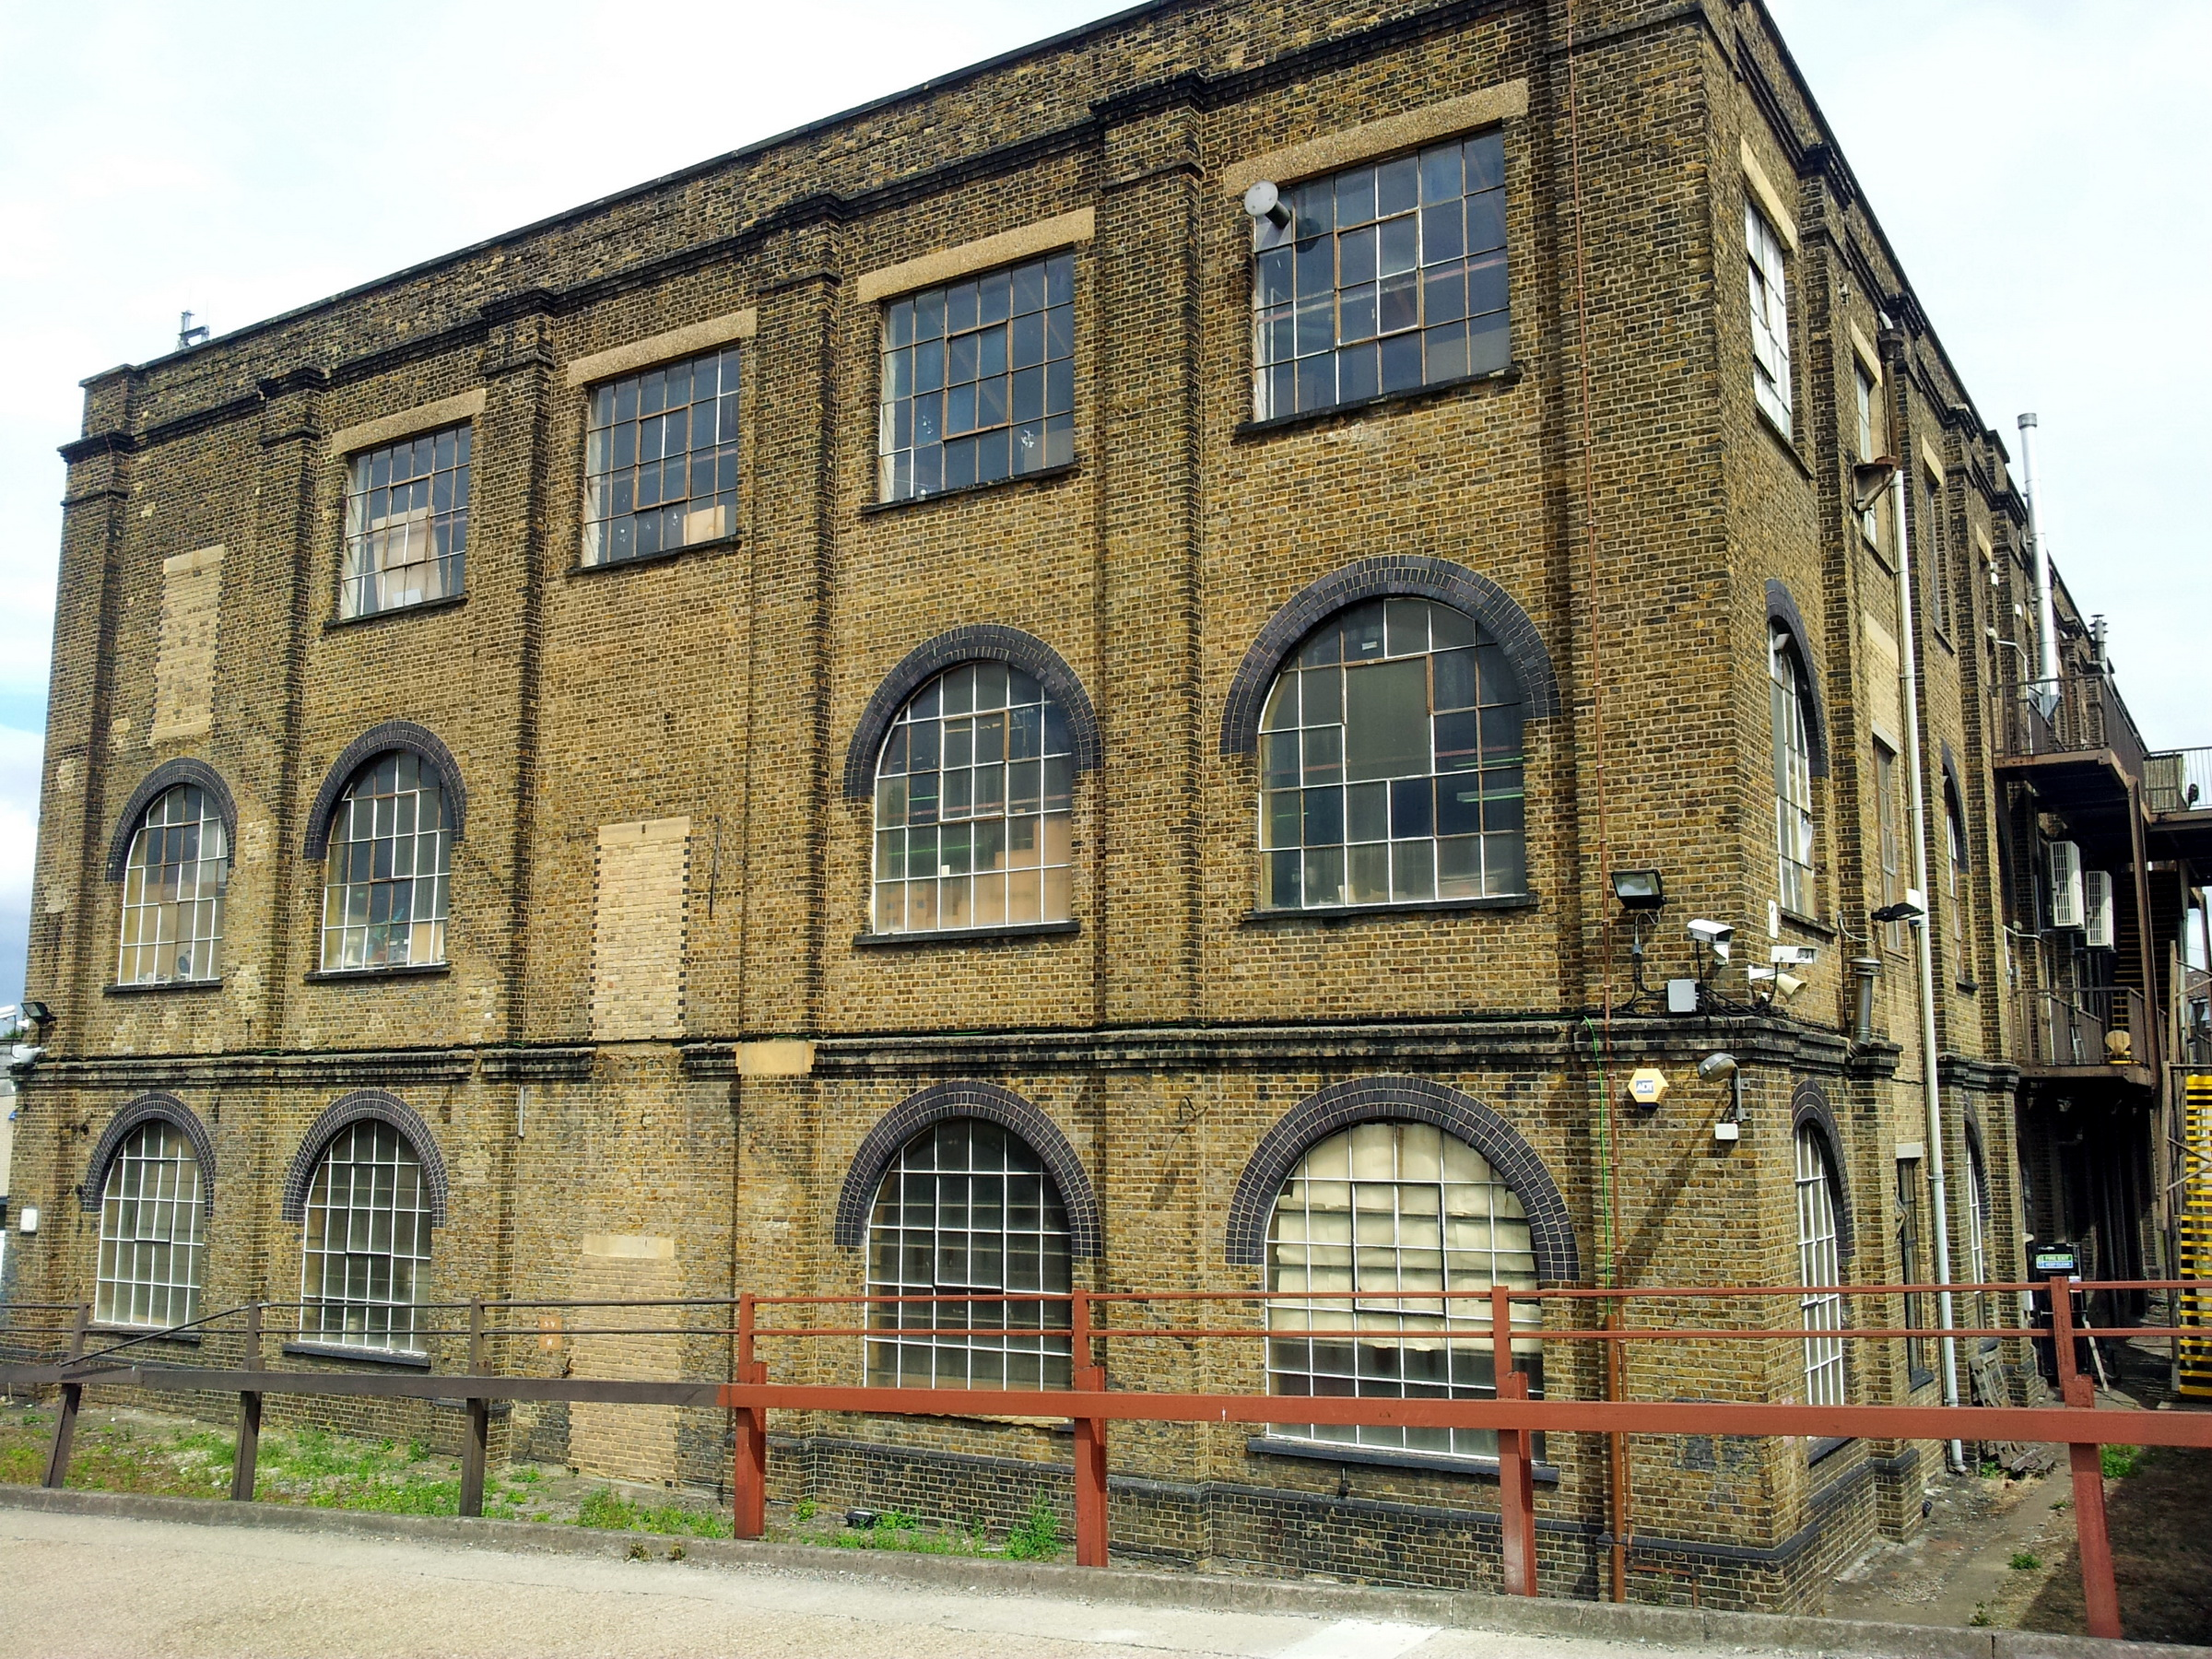 Old Factory Building 1800 File:london, woolwich dockyard, old factory ... Old Factory Building